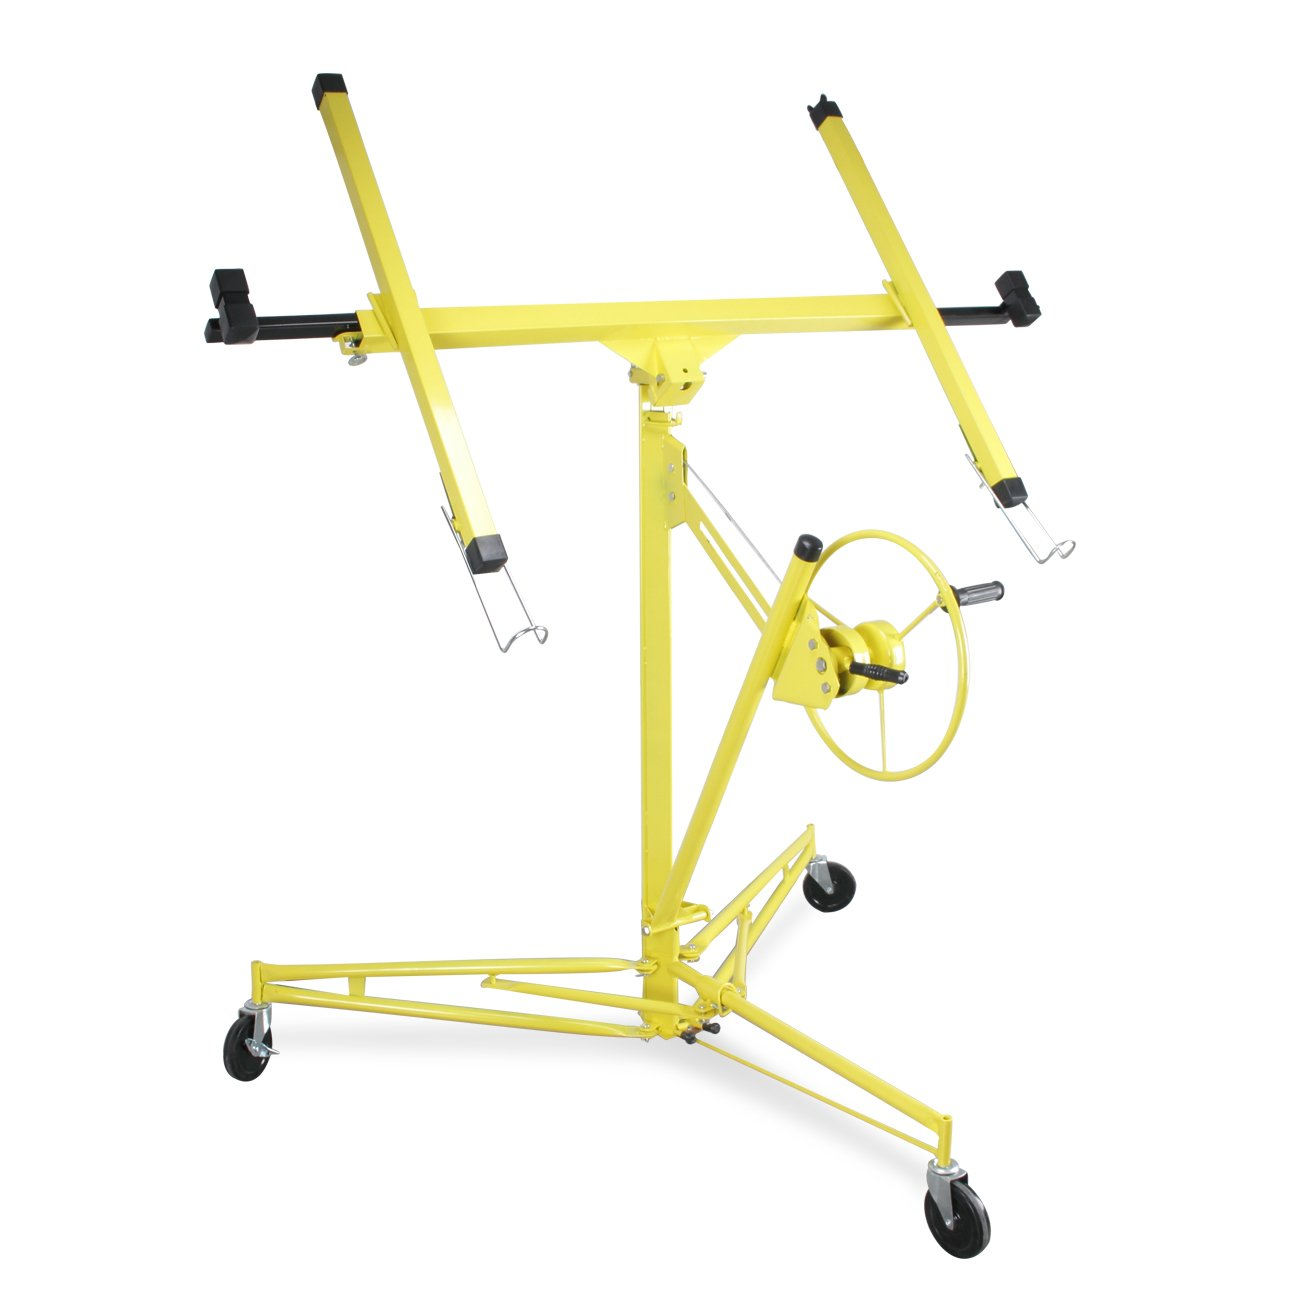 ARKSEN | Drywall Panel Lift | Dry Wall Panel Hoist | Lockable Lifter | Ceiling Max 11 FT | Angled Ceiling Max 15 FT | 150 LB Max | Caster Wheels | 65 Degree Tilt | Yellow by ARKSEN (Image #1)